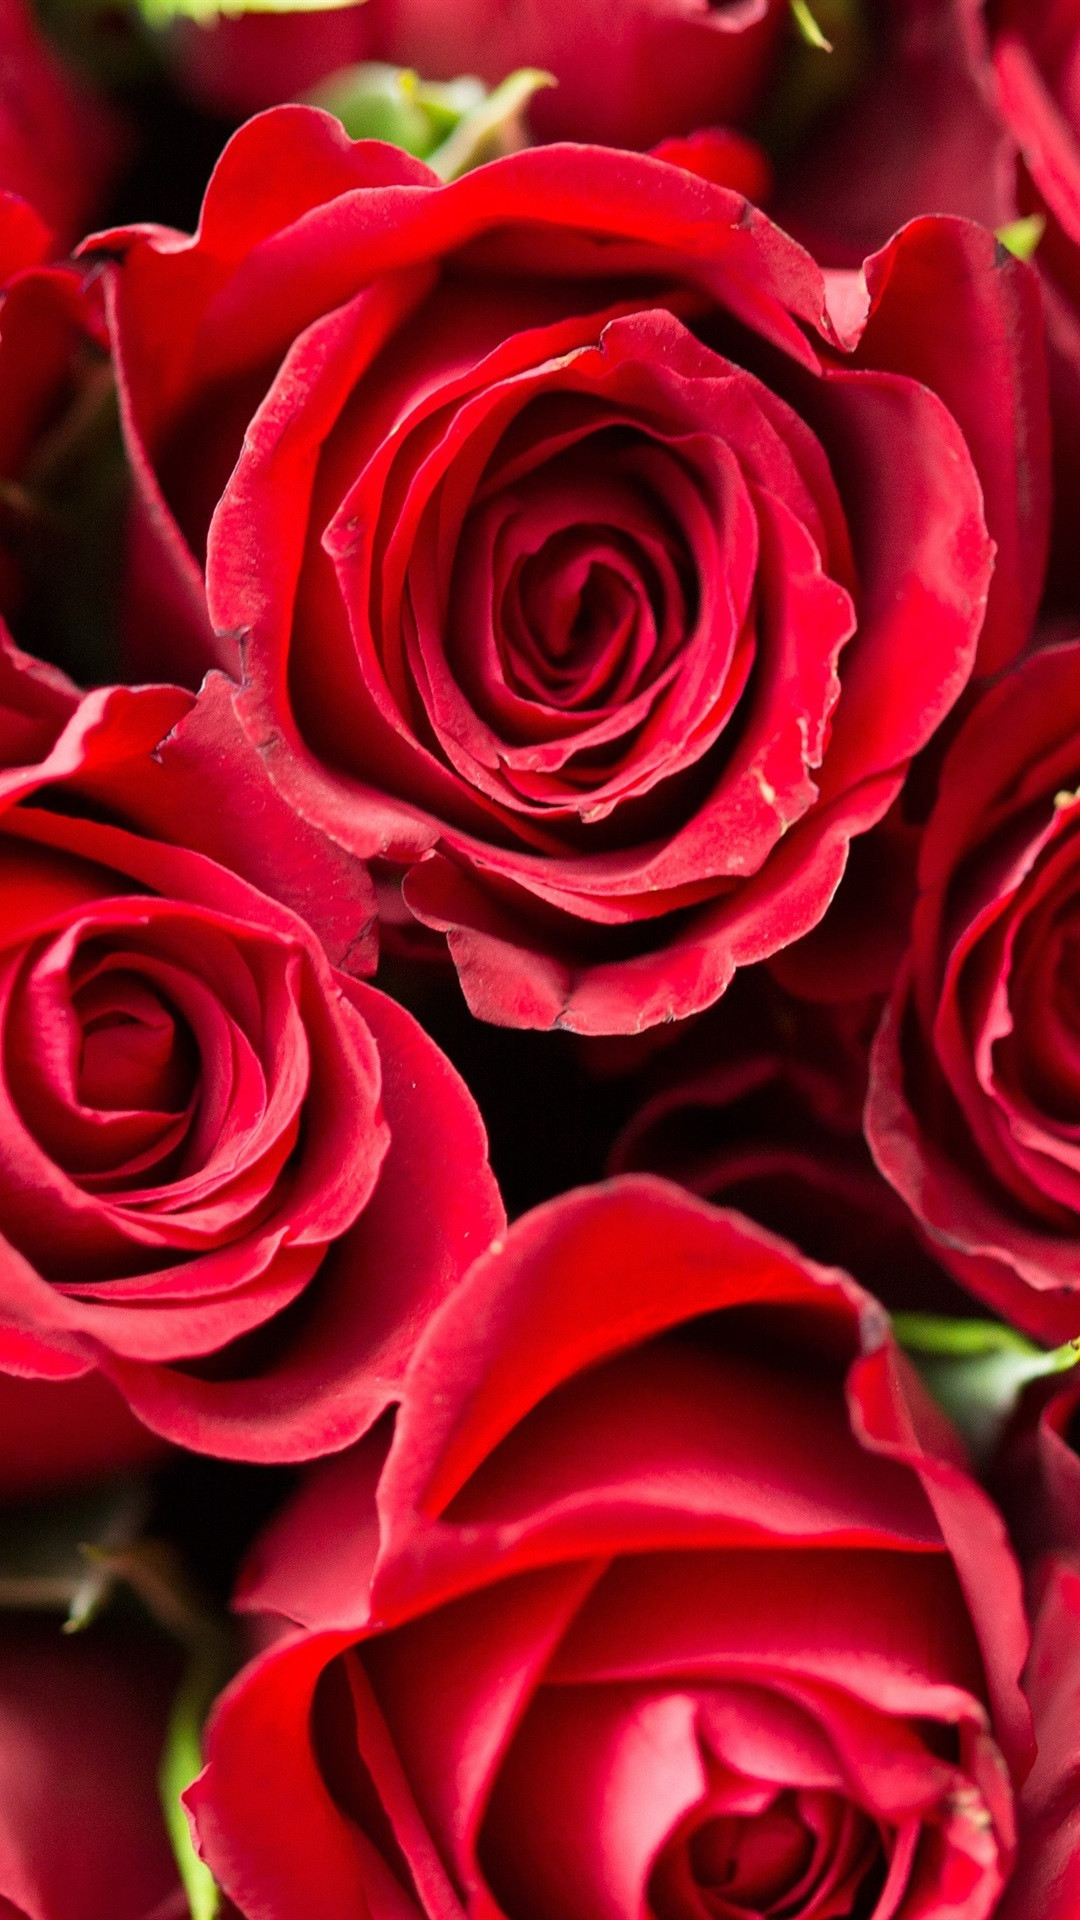 mxhbR rose flower red 4k valentines day wallpapers iphone